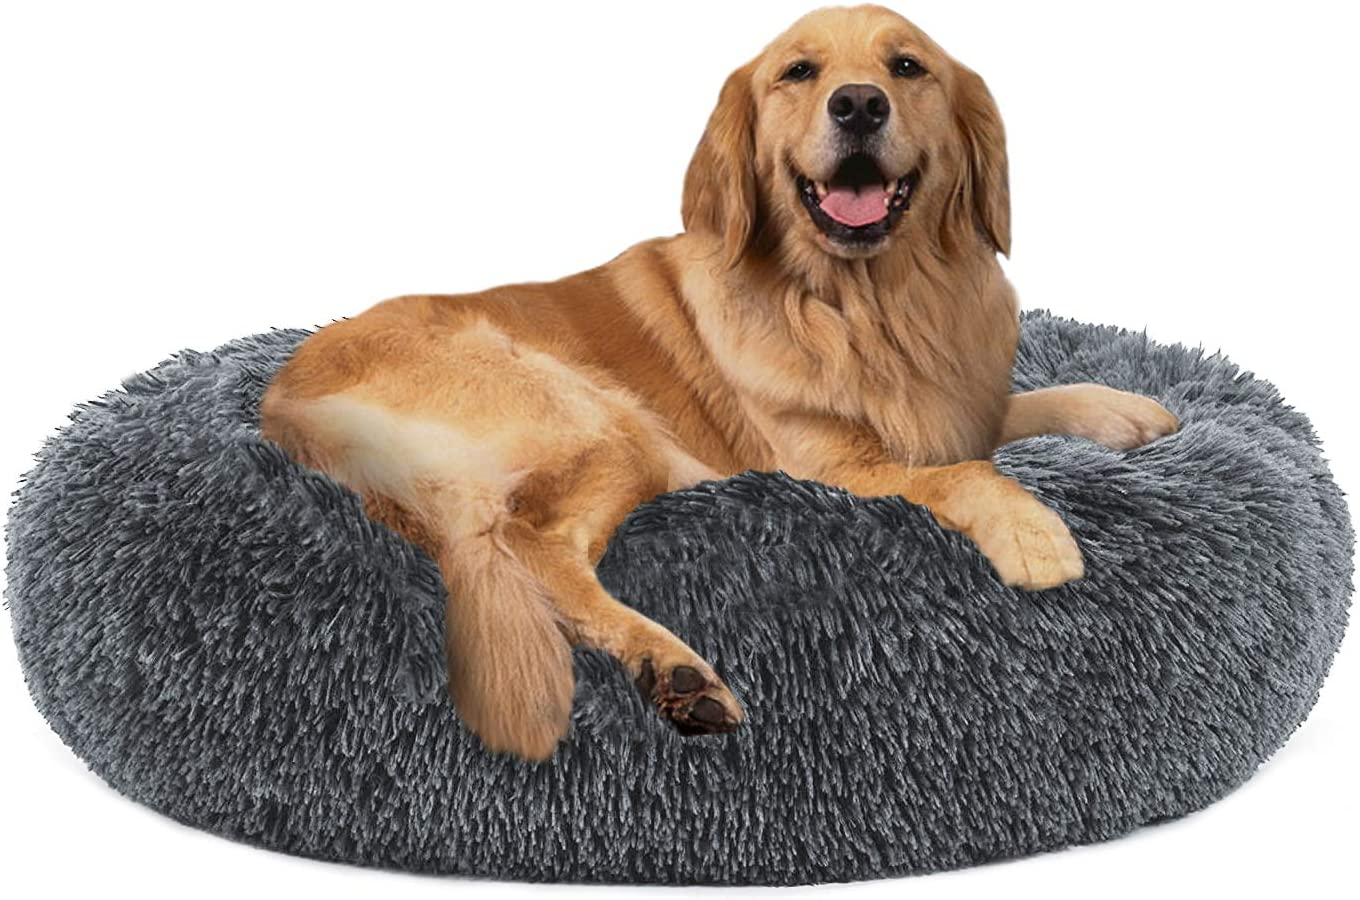 24//32//36 PUPPBUDD Calming Dog Bed Cat Bed Donut Faux Fur Pet Bed Self-Warming Donut Cuddler Comfortable Round Plush Dog Beds for Large Medium Dogs and Cats